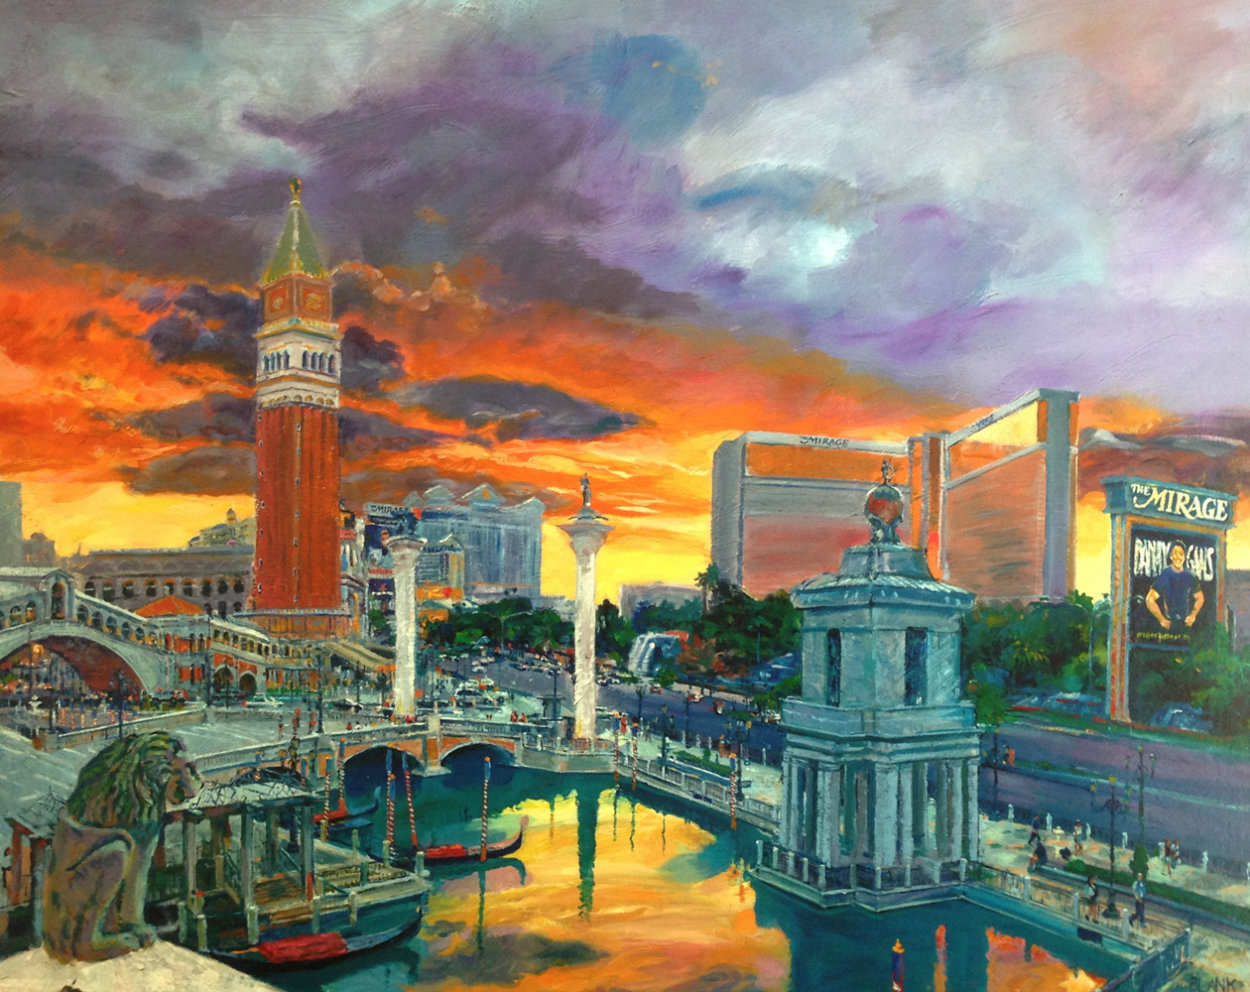 Venetian Hotel 2004 Huge Limited Edition Print by Jerry Blank